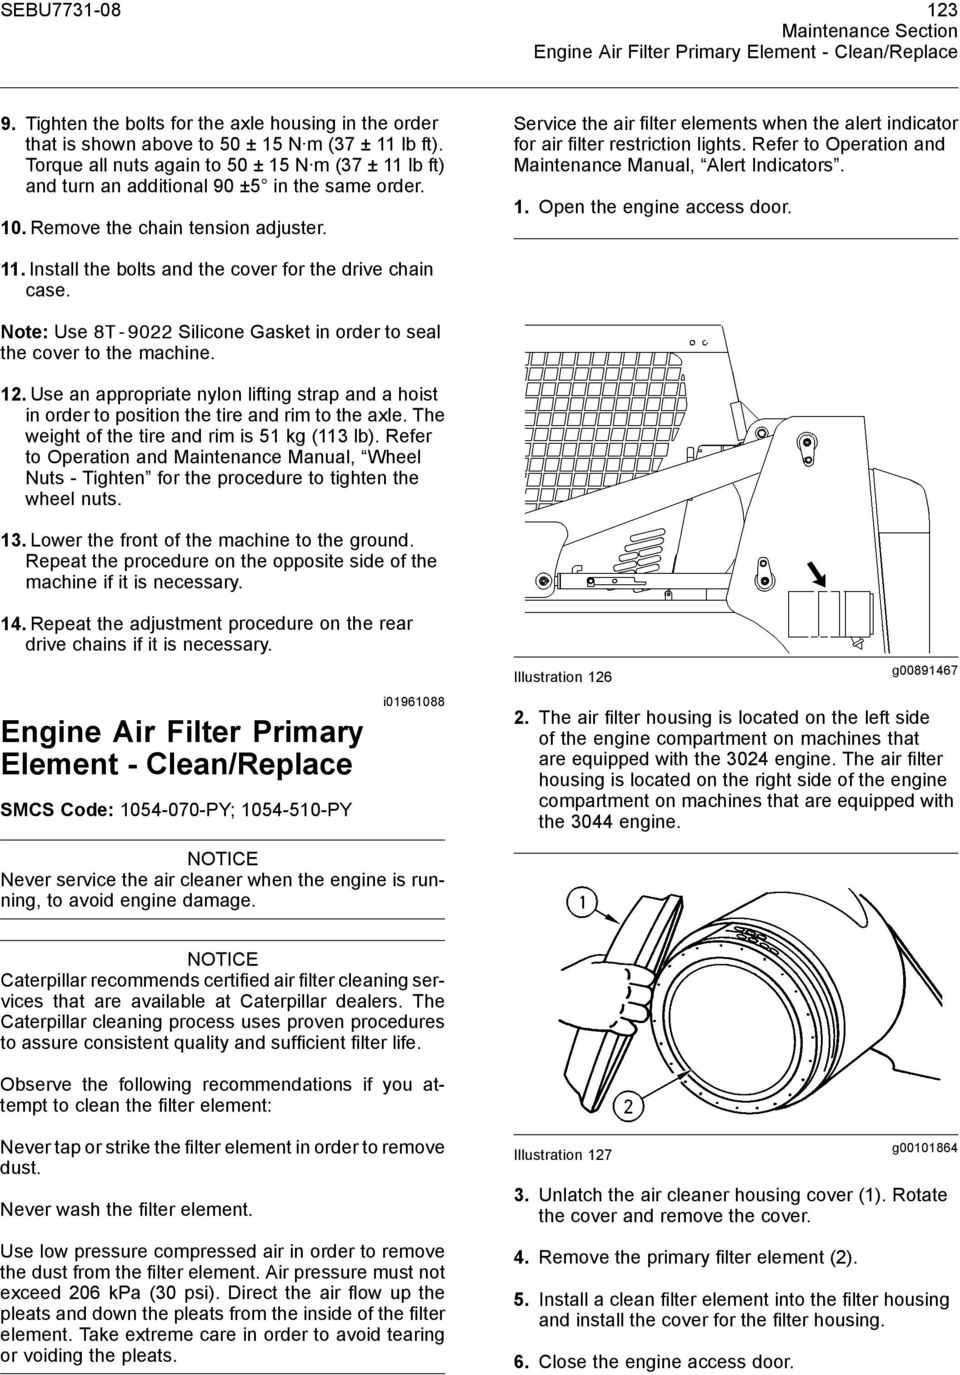 Service the air filter elements when the alert indicator for air filter  restriction lights. Refer